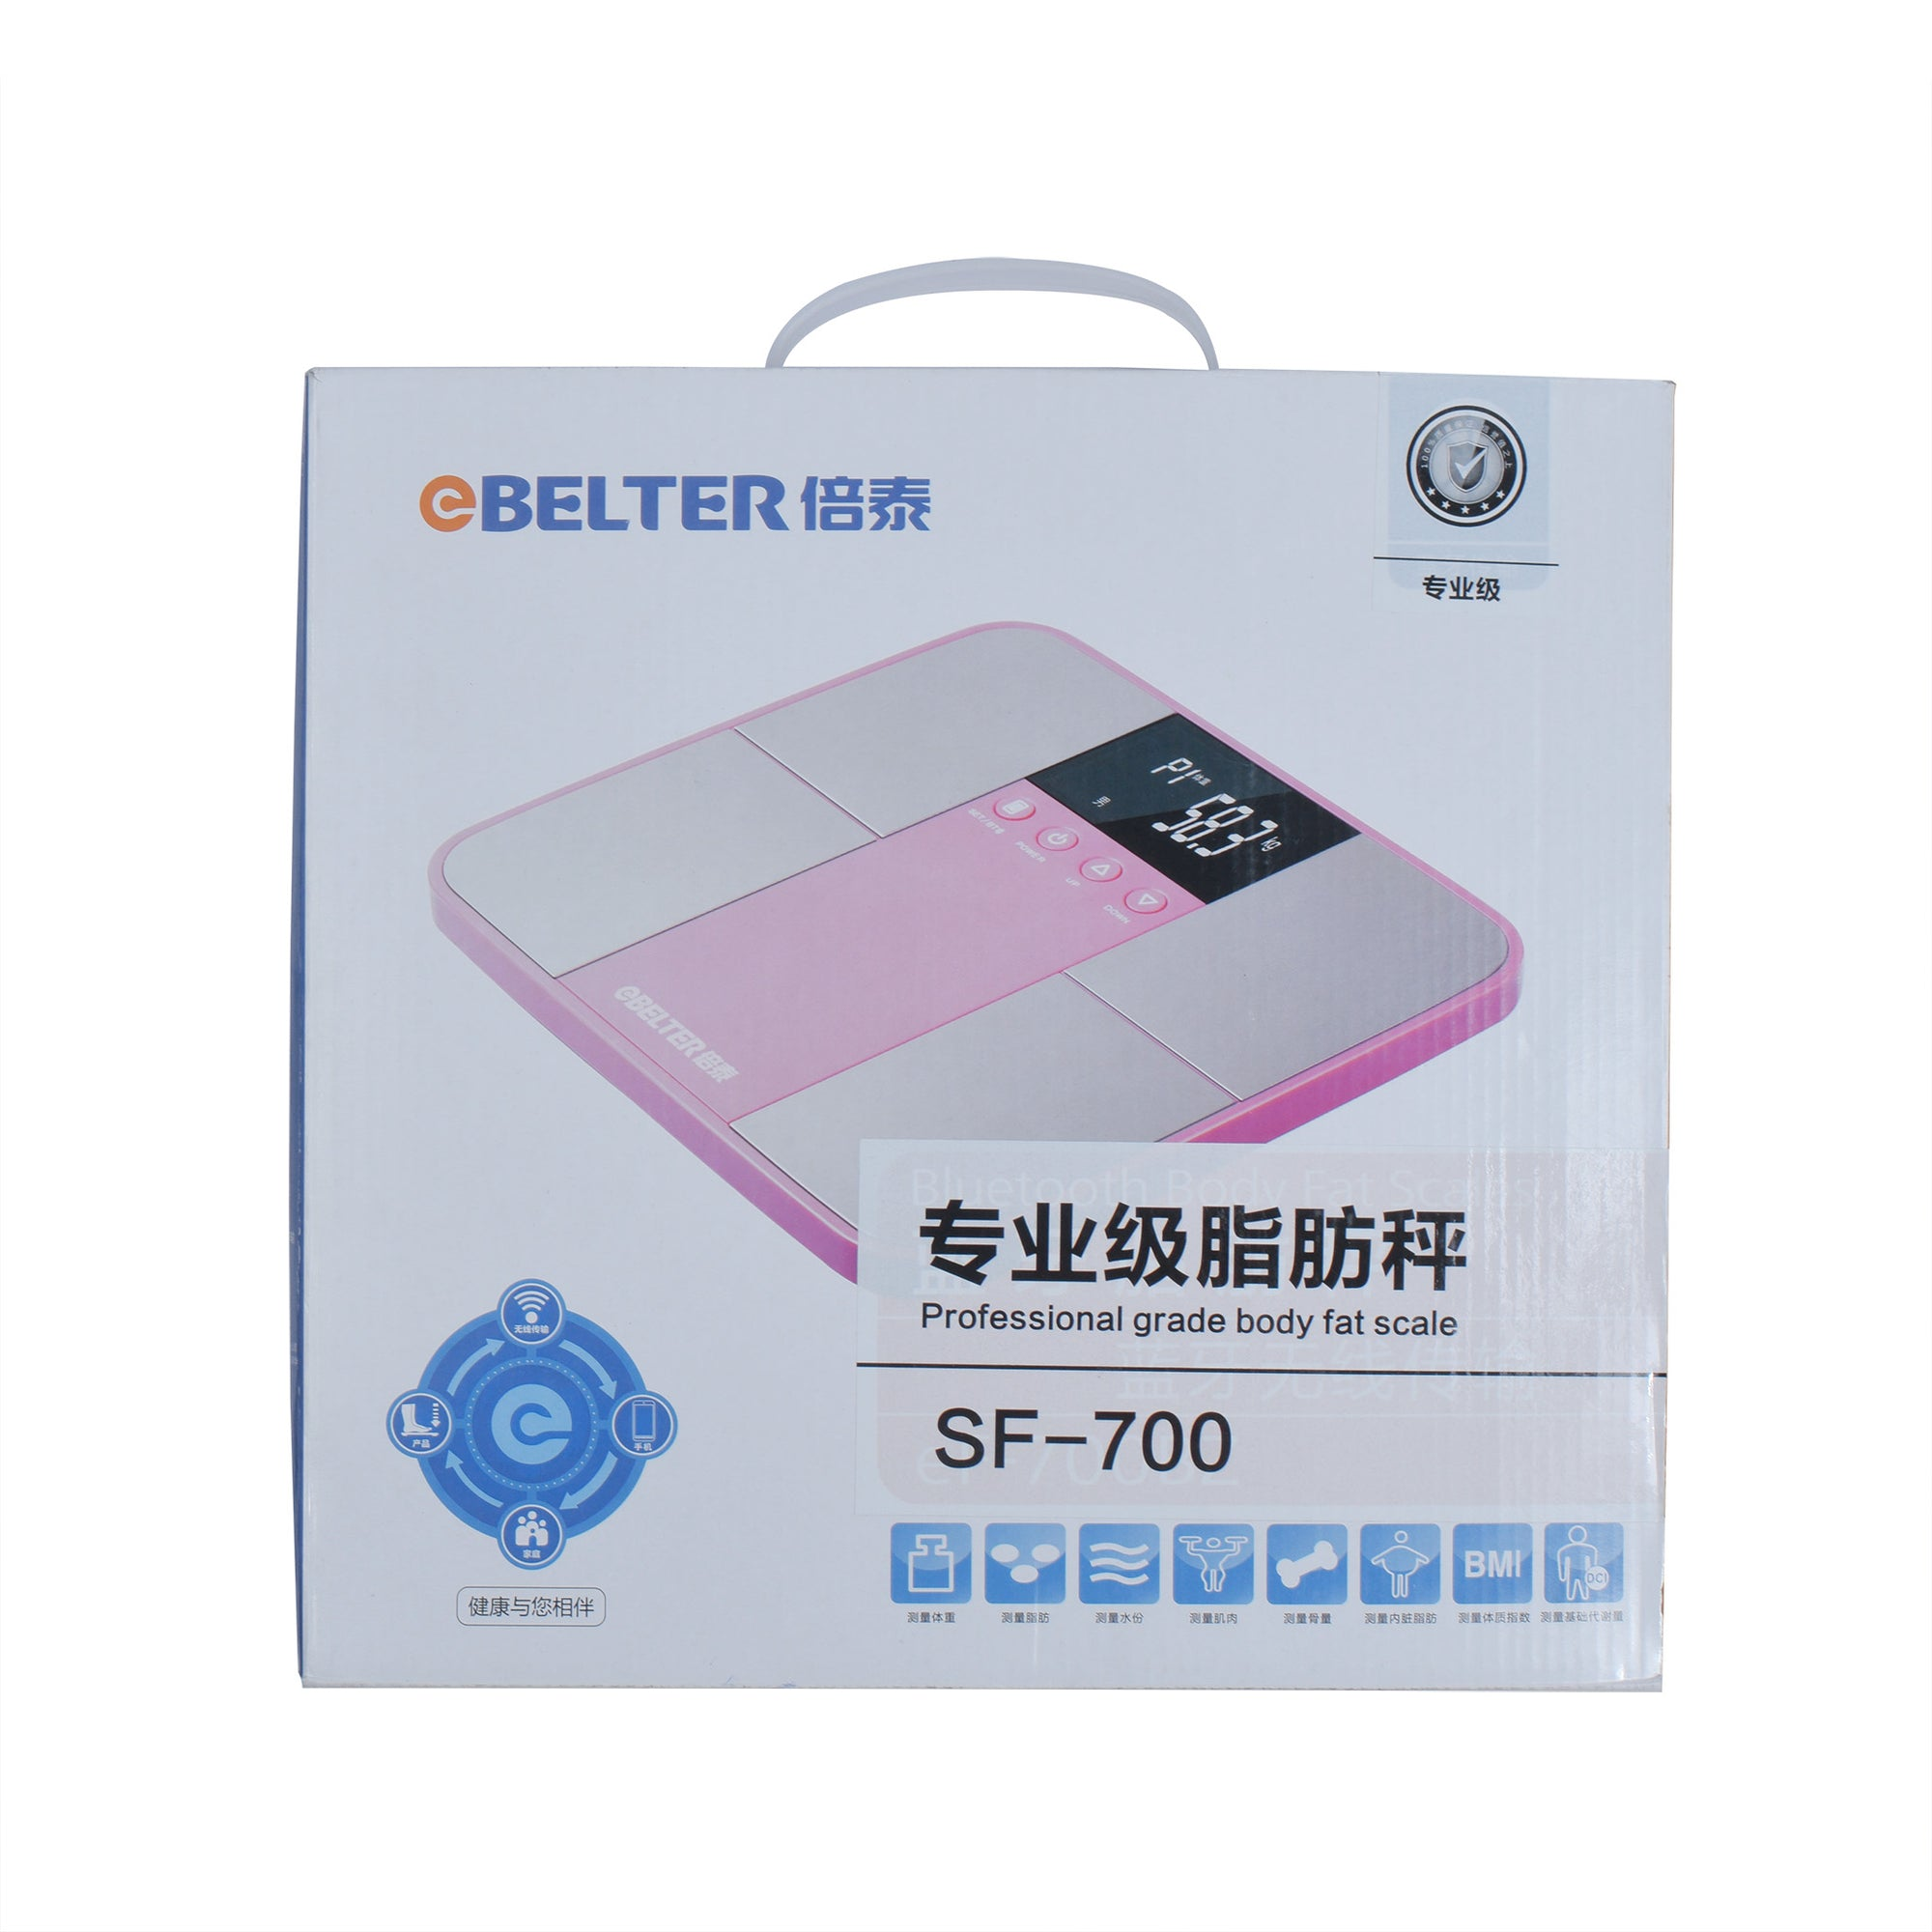 BELTER Smart Weight Body Fat Scales, Digital Bathroom Weighing Household Electronic-SK0391